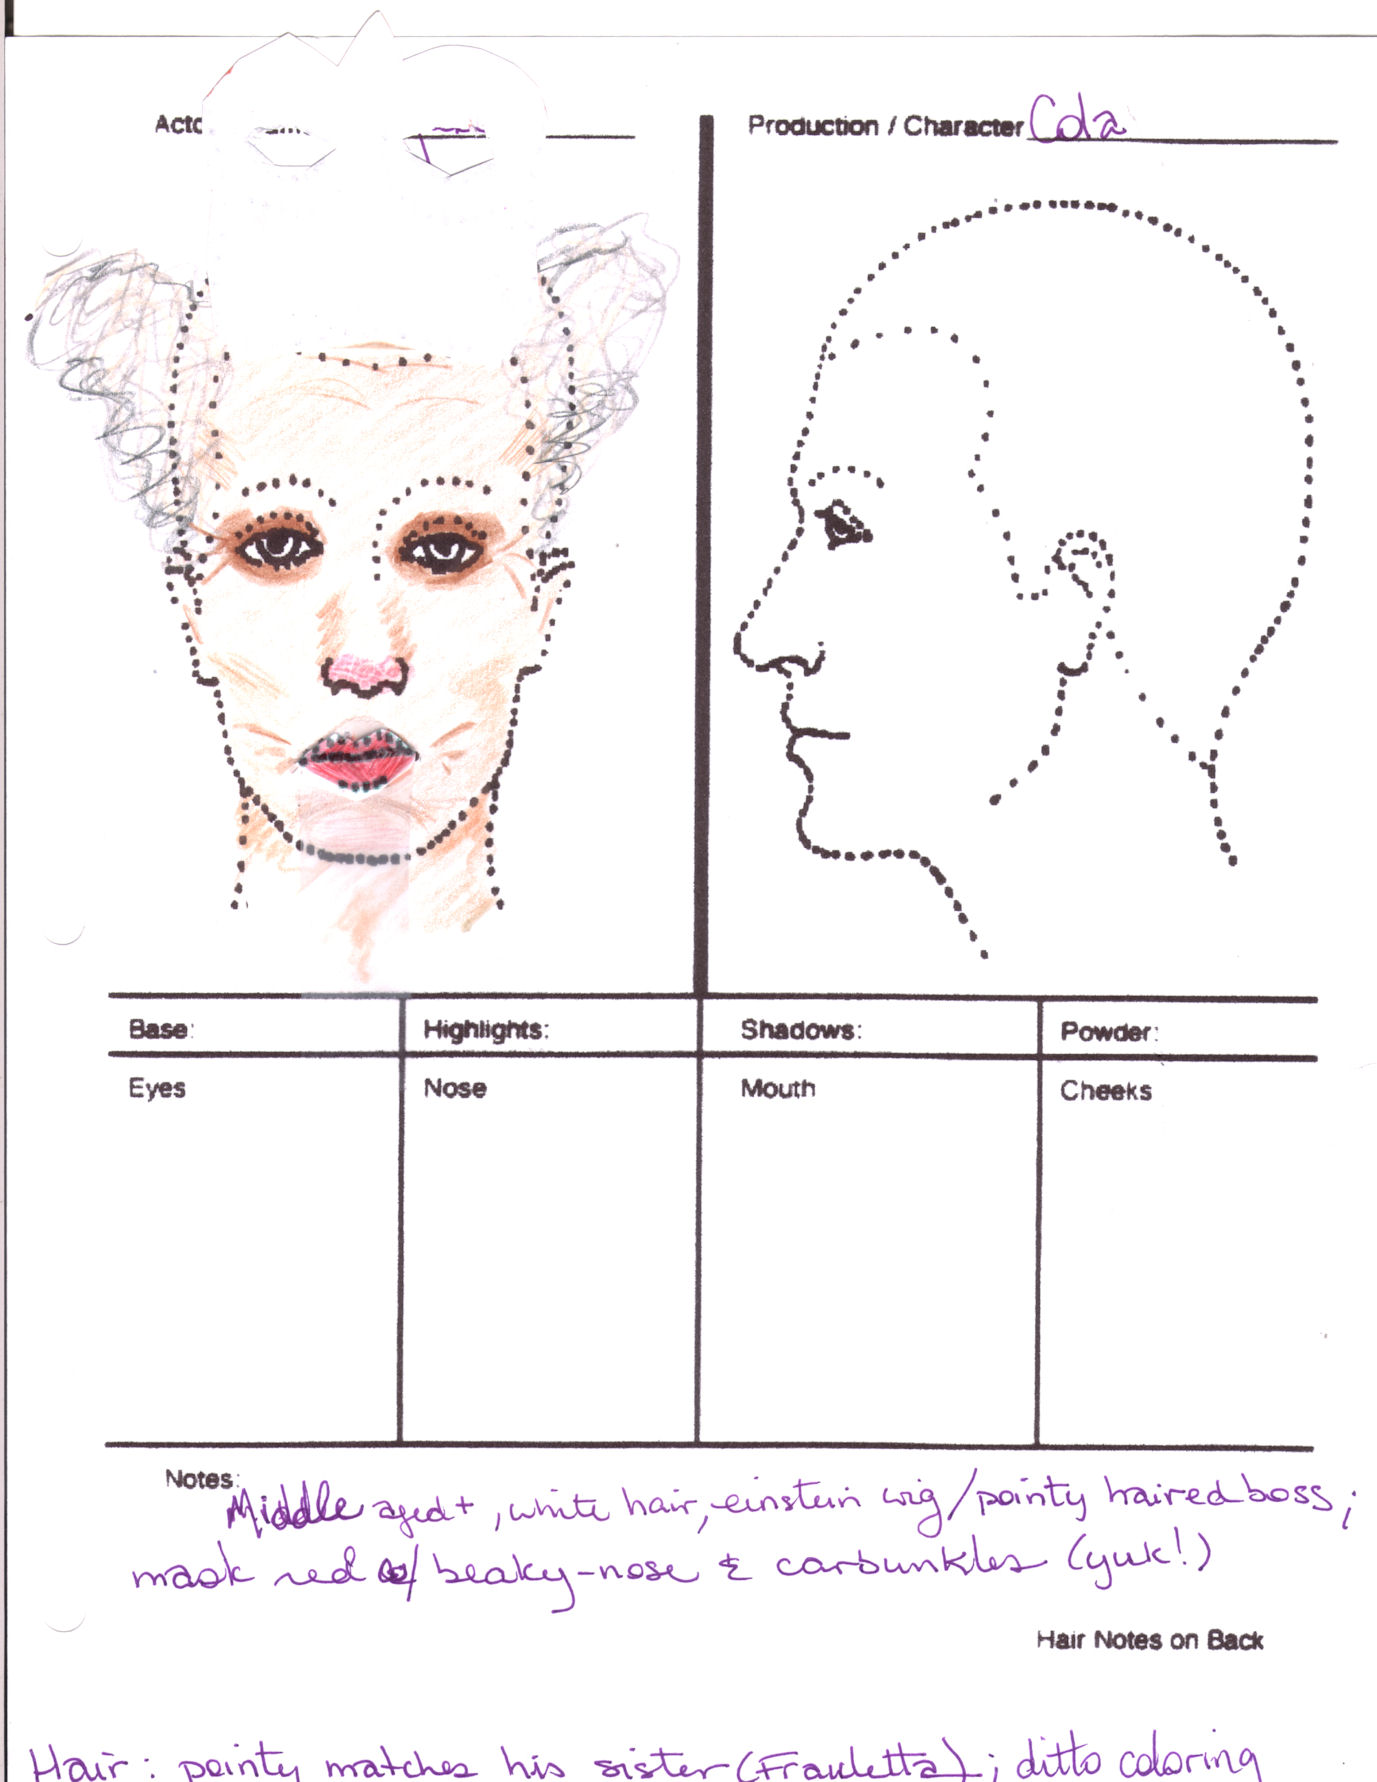 Makeup Design Under The Mask